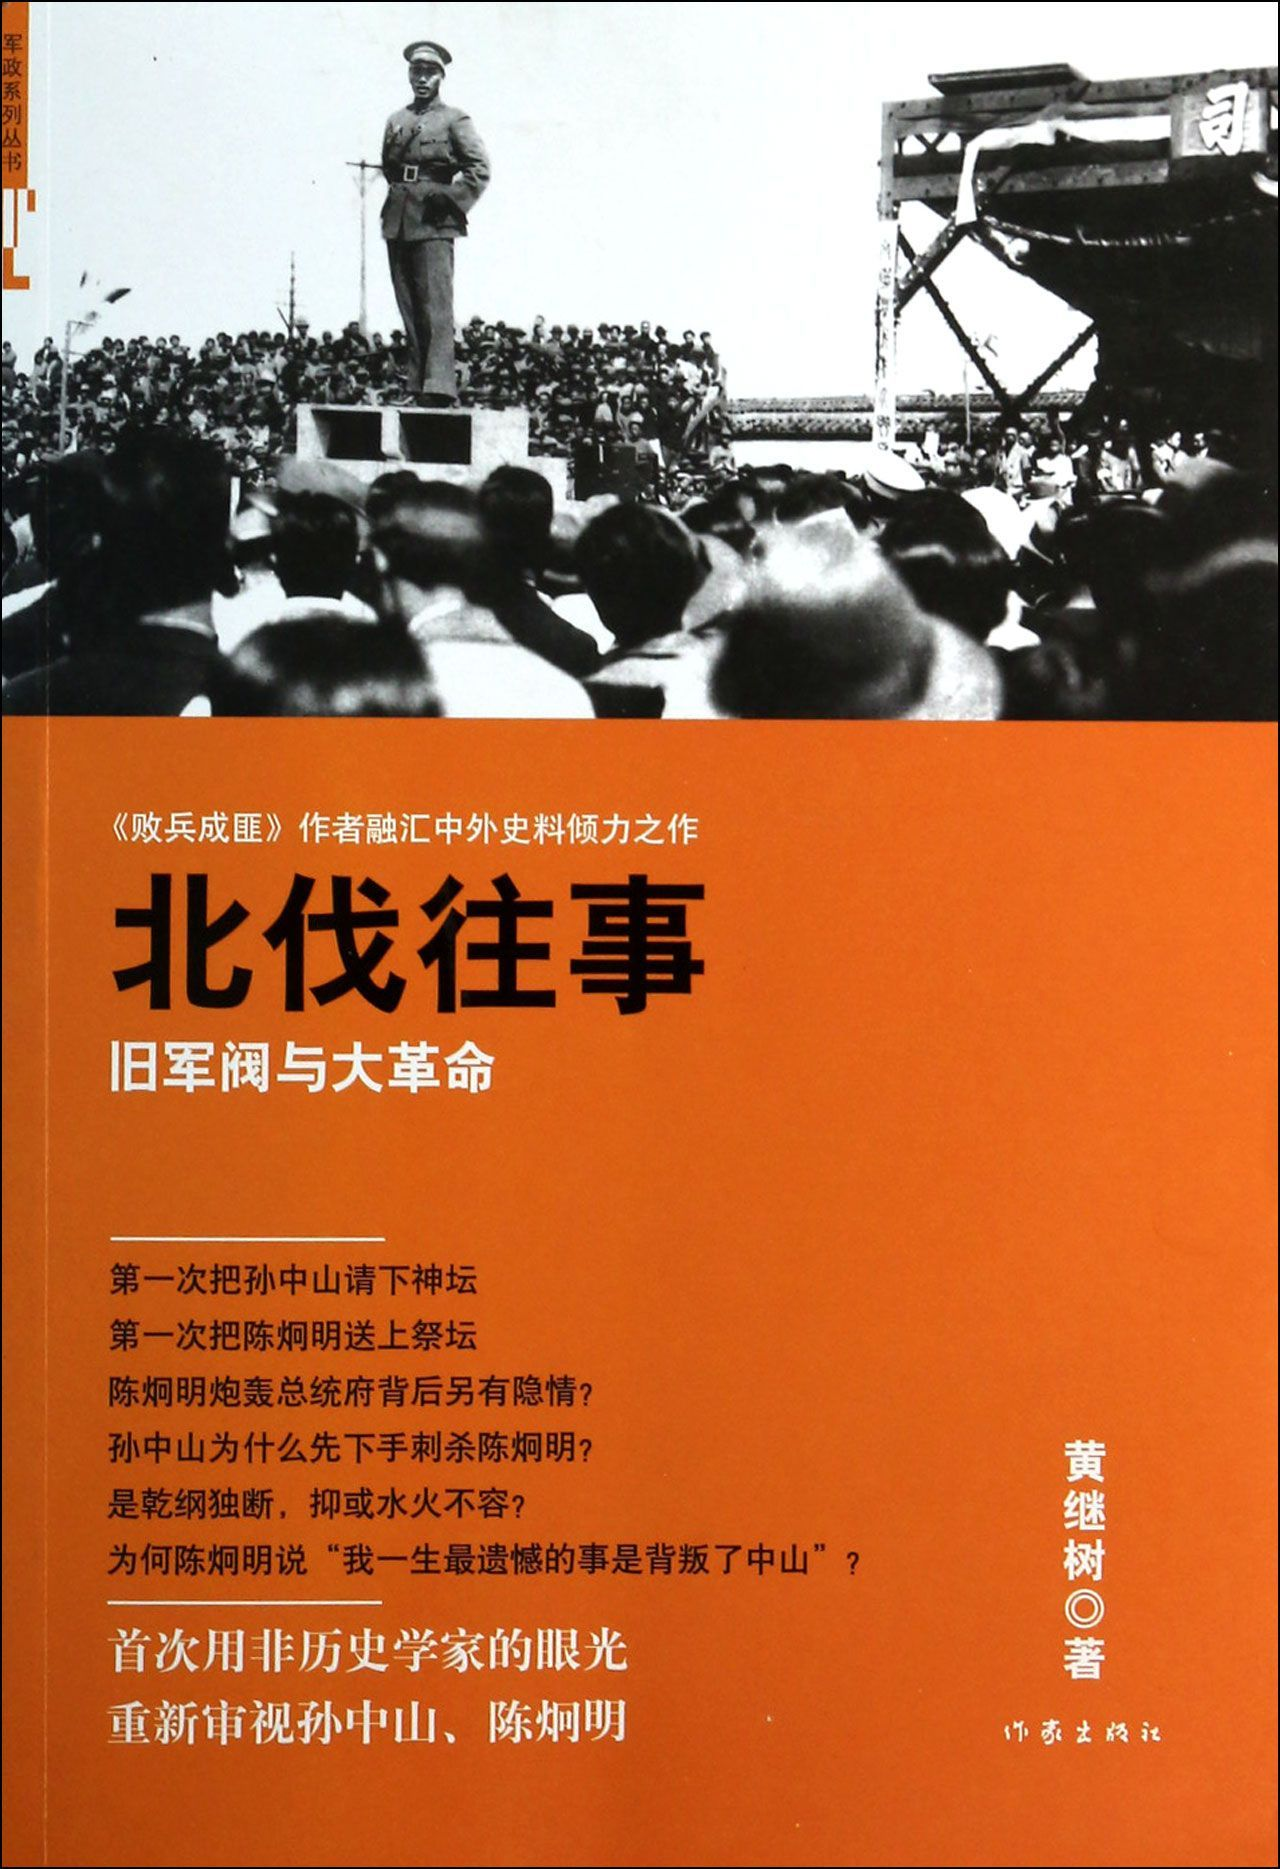 The Northern Expeditions: Old Warlords and Great Revolution 北伐往事 Huang Jishu 黄继树